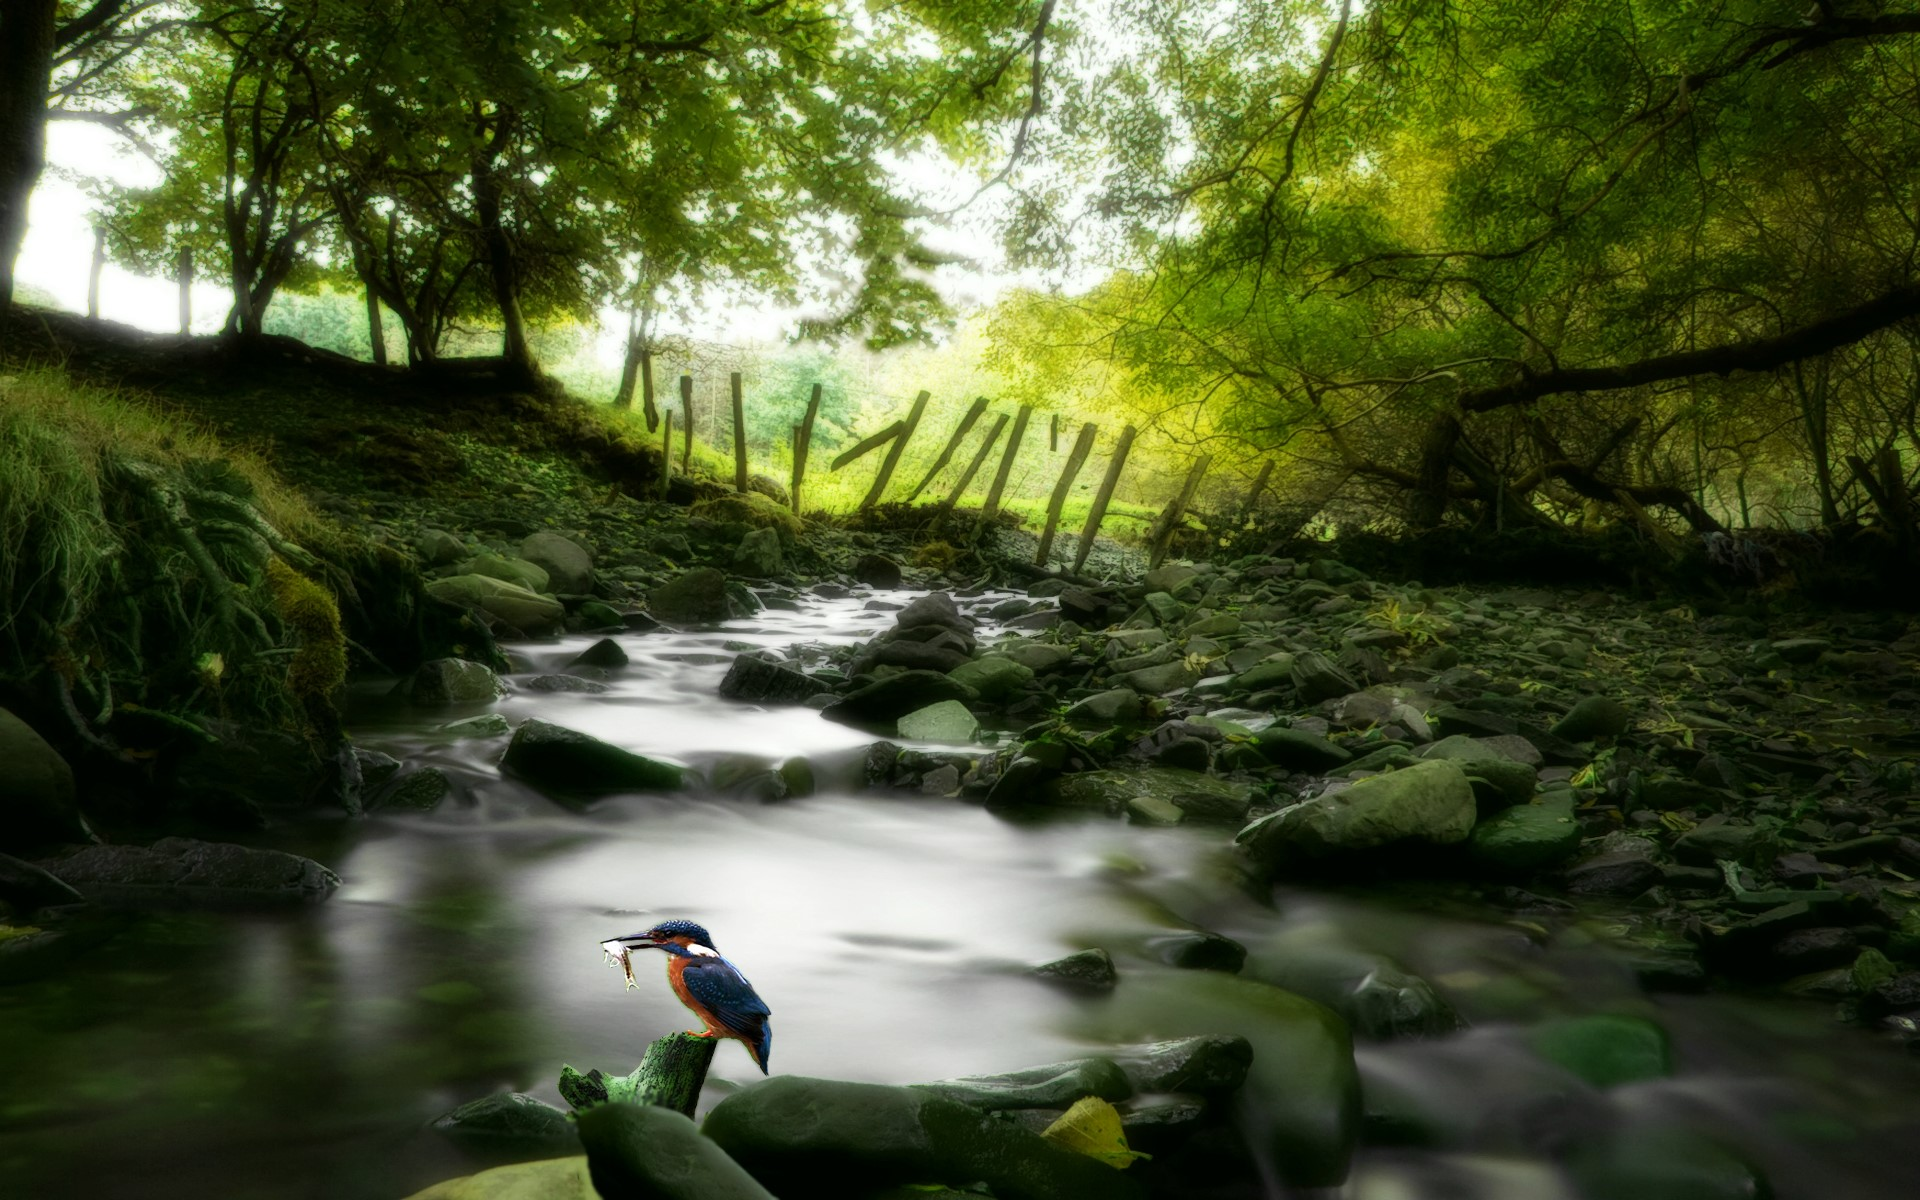 Hd Wallpaper Widescreen Nature - Awesome Wallpapers Nature - HD Wallpaper